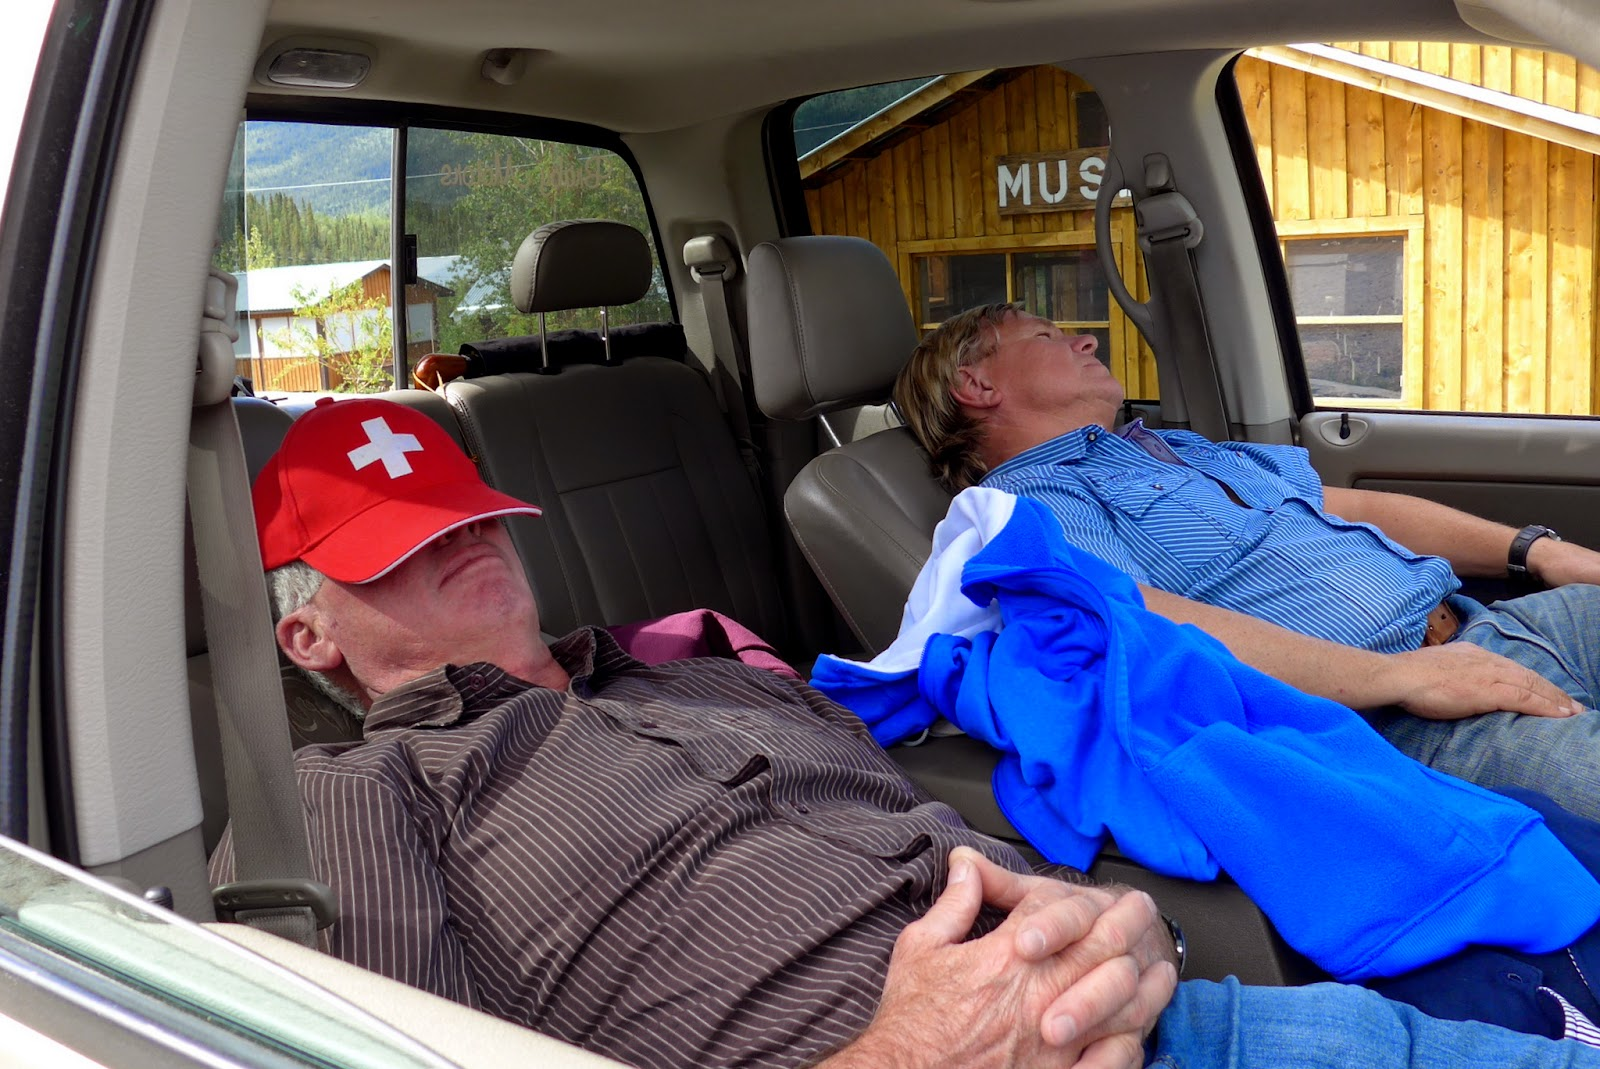 Anders and Hansuli having a nap in the truck.